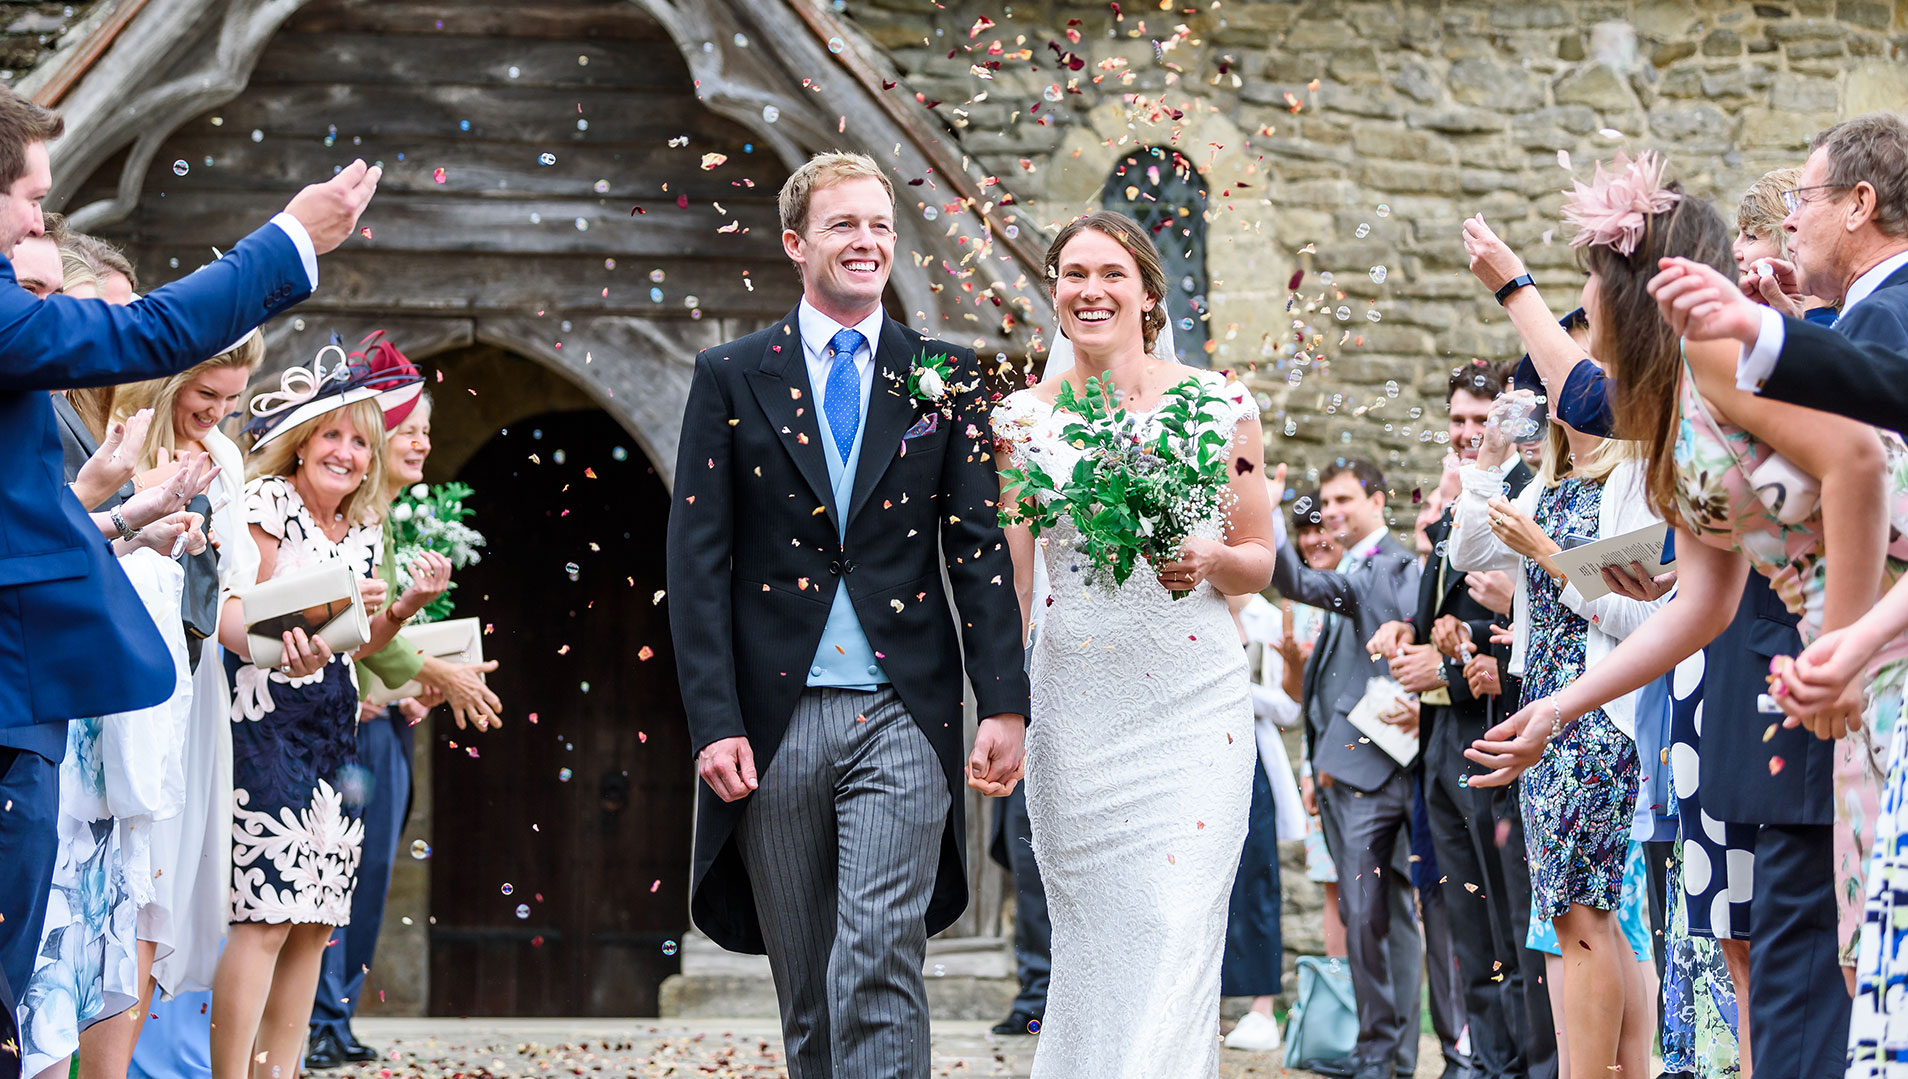 An image of a confetti throw outside a church on their wedding day - wedding day photography by Sam of Hansford Carter, a Kent-based wedding photographer